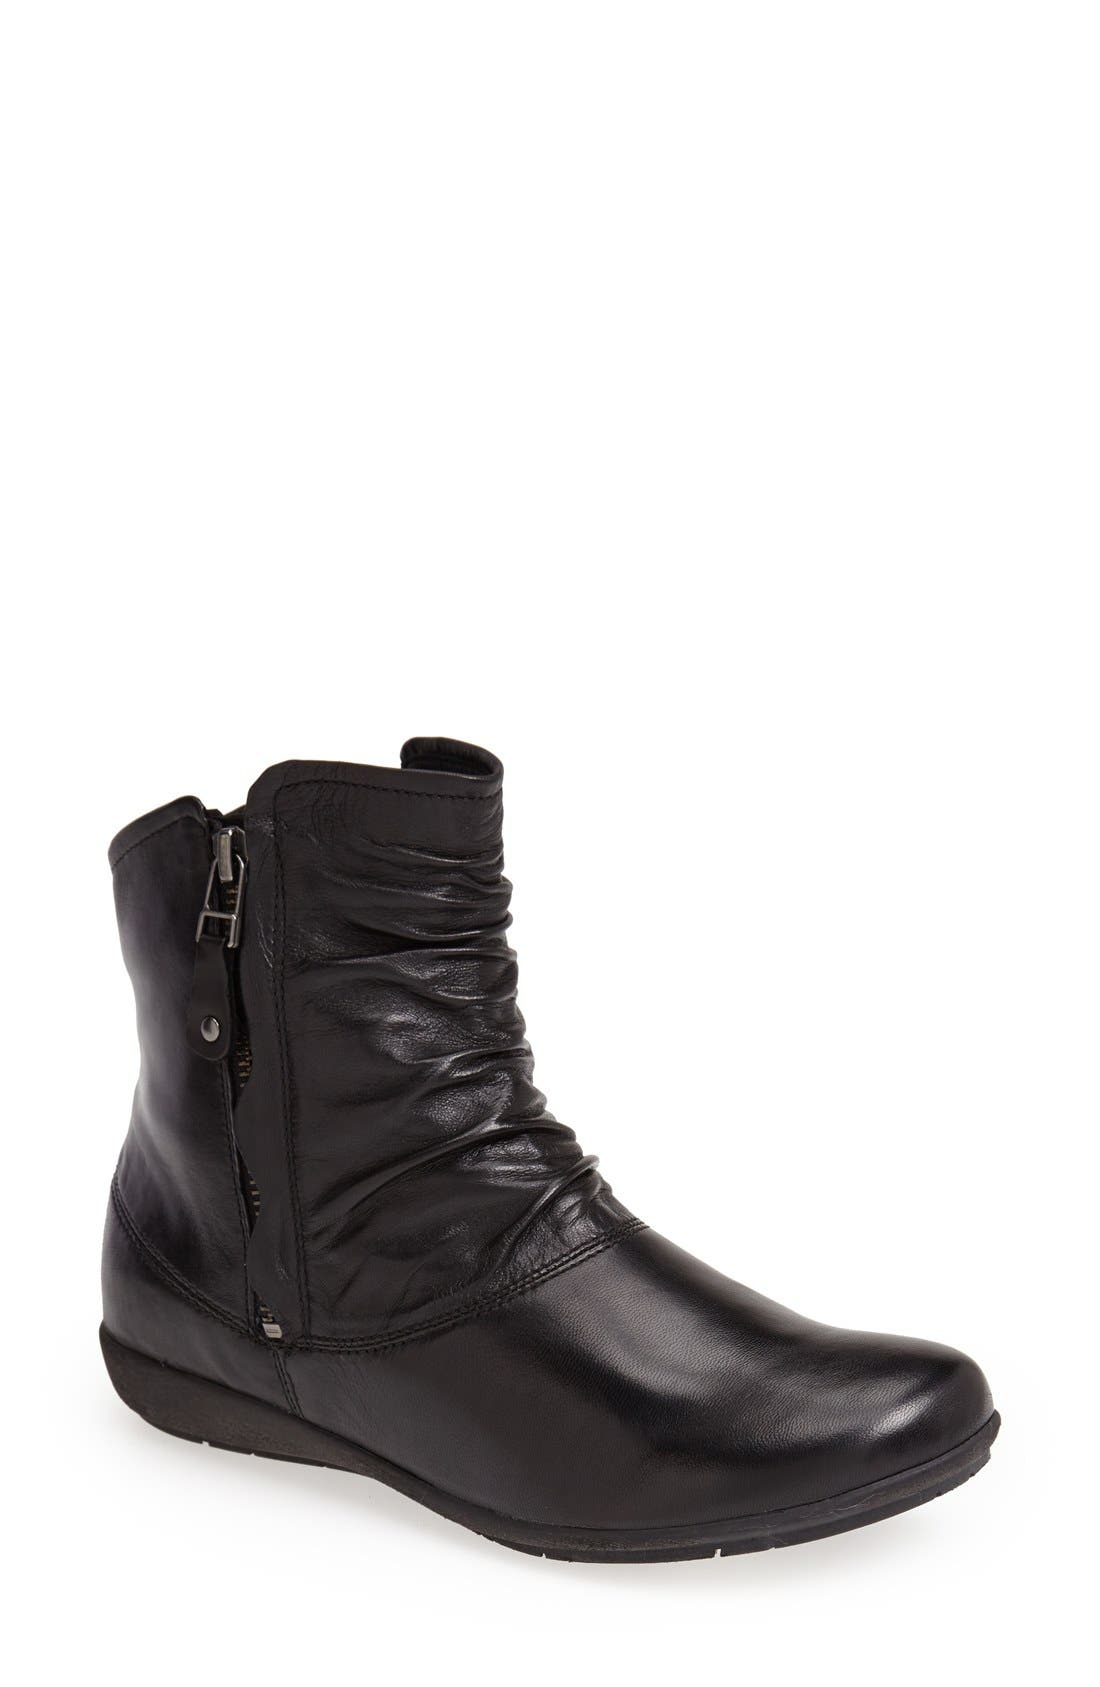 Main Image - Josef Seibel 'Faye 05' Boot (Women)